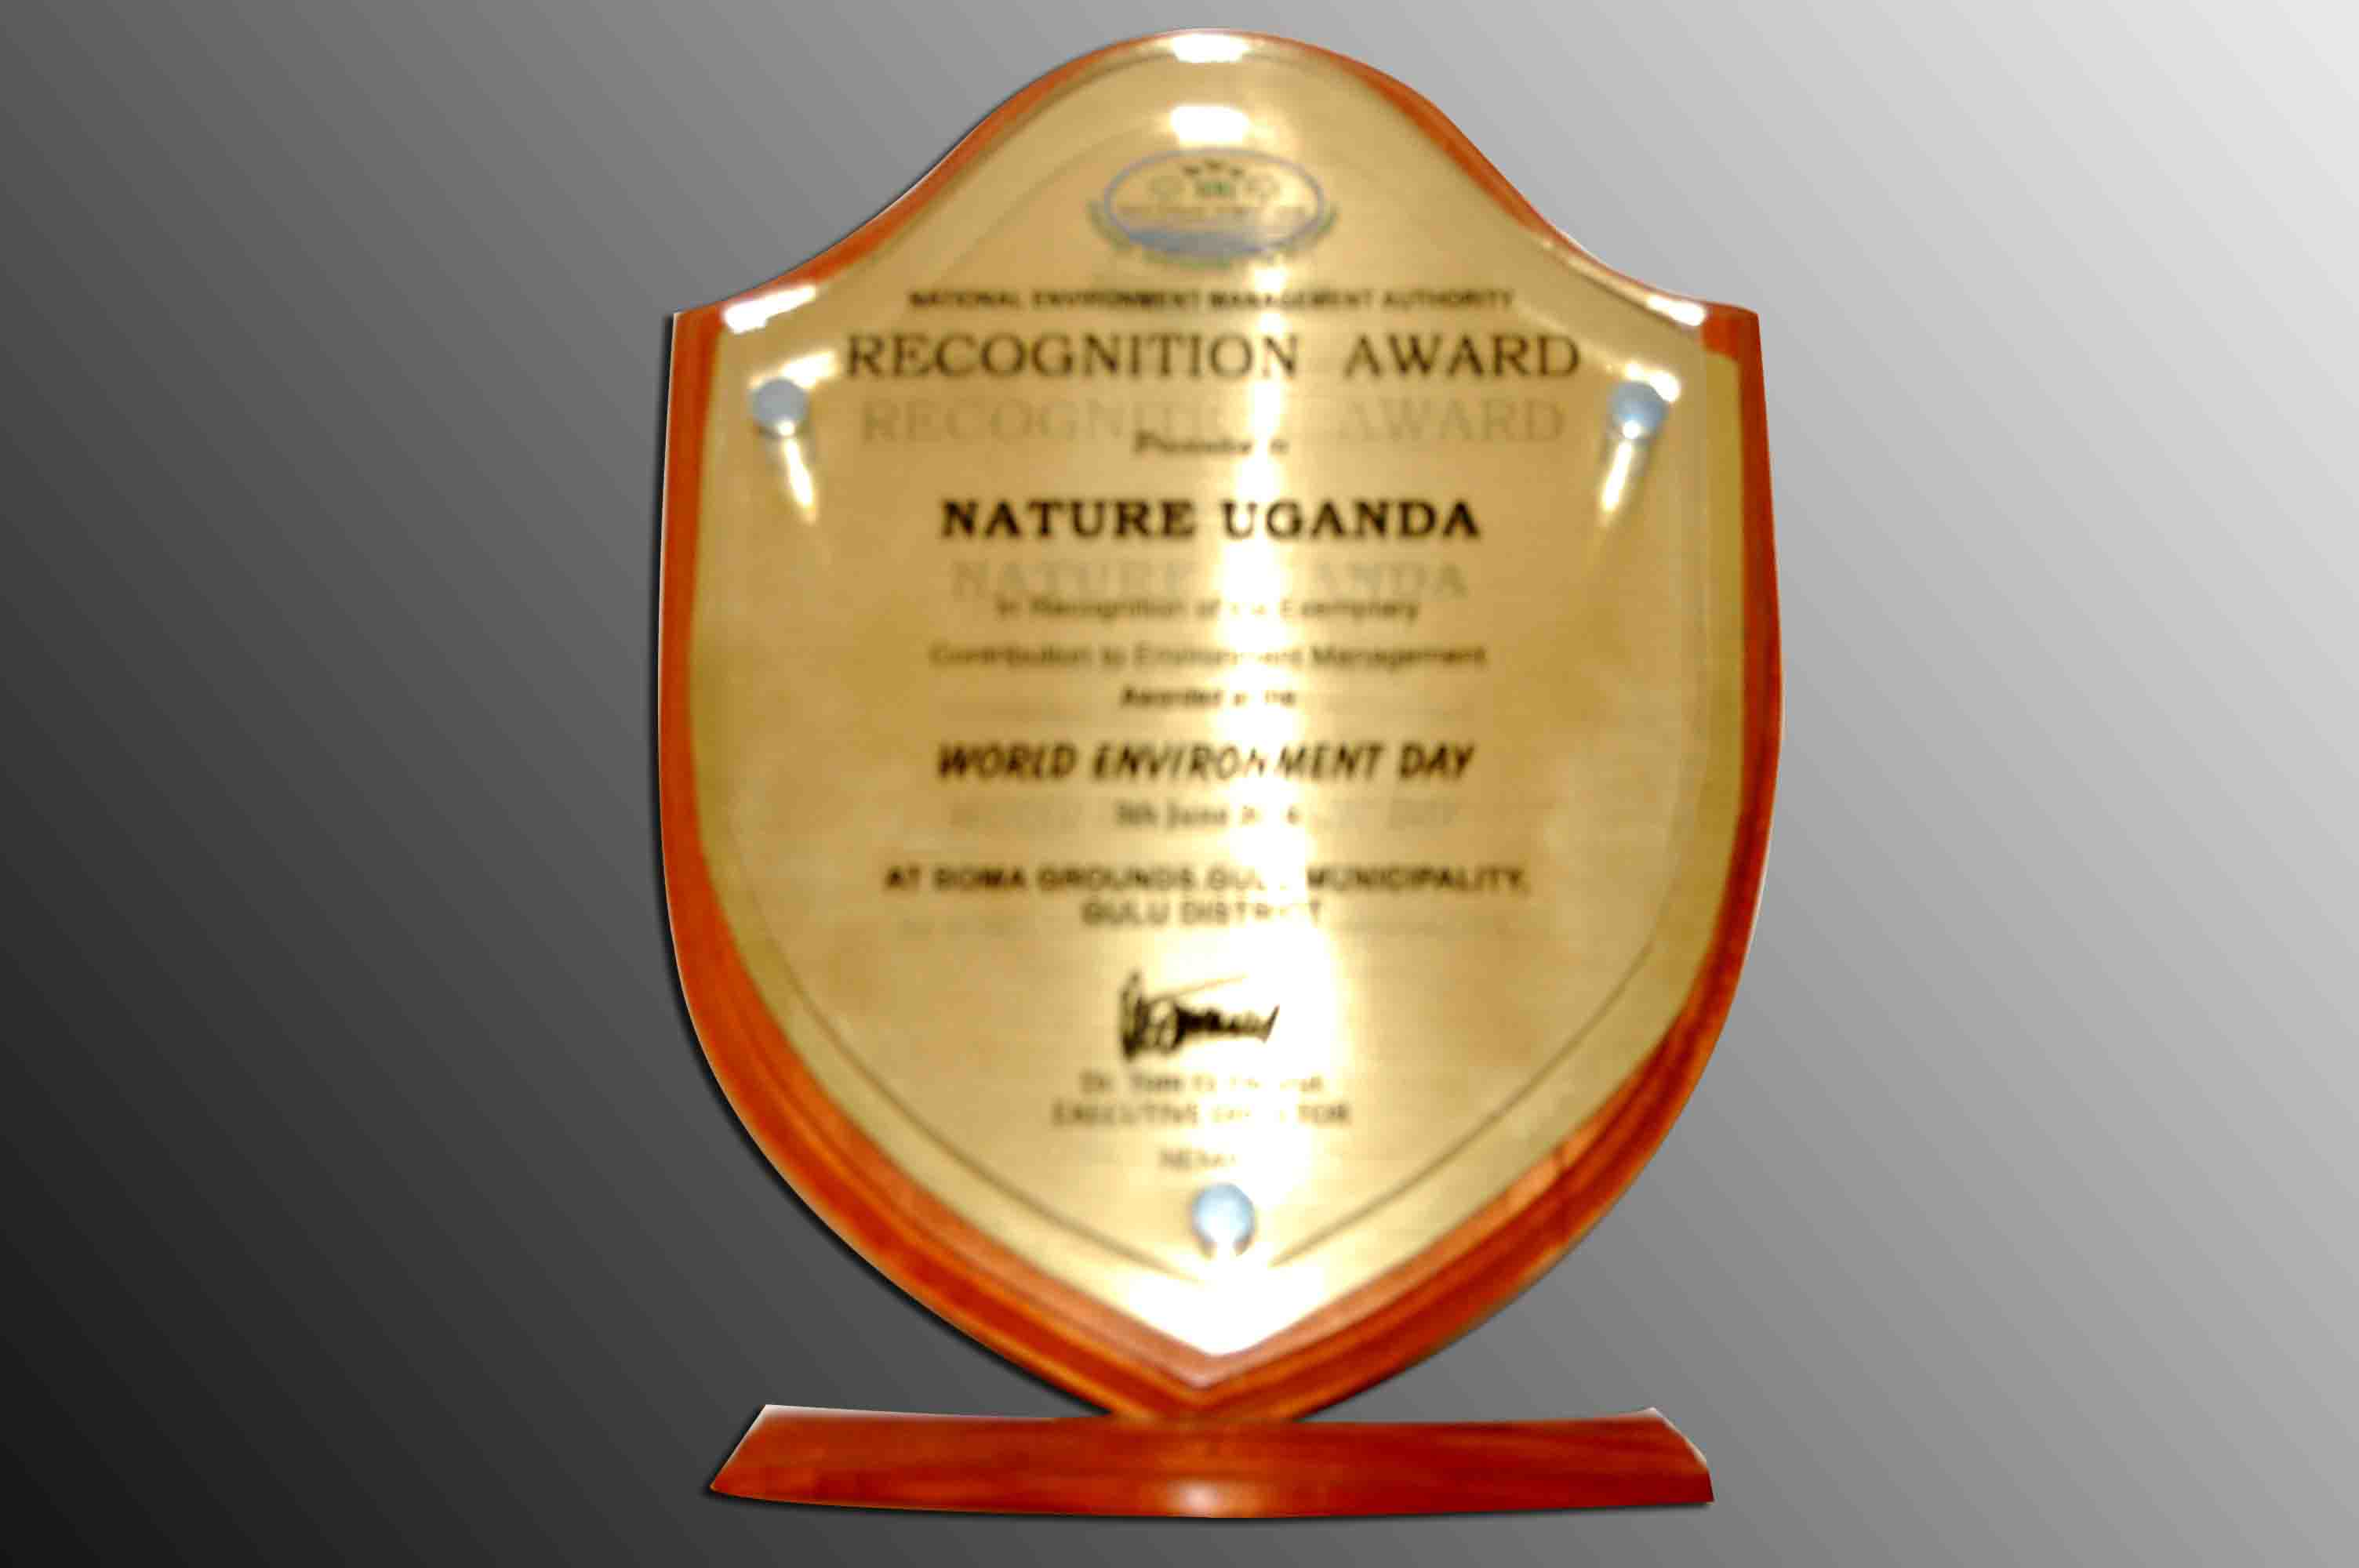 Recognition Award - World Environmet Day